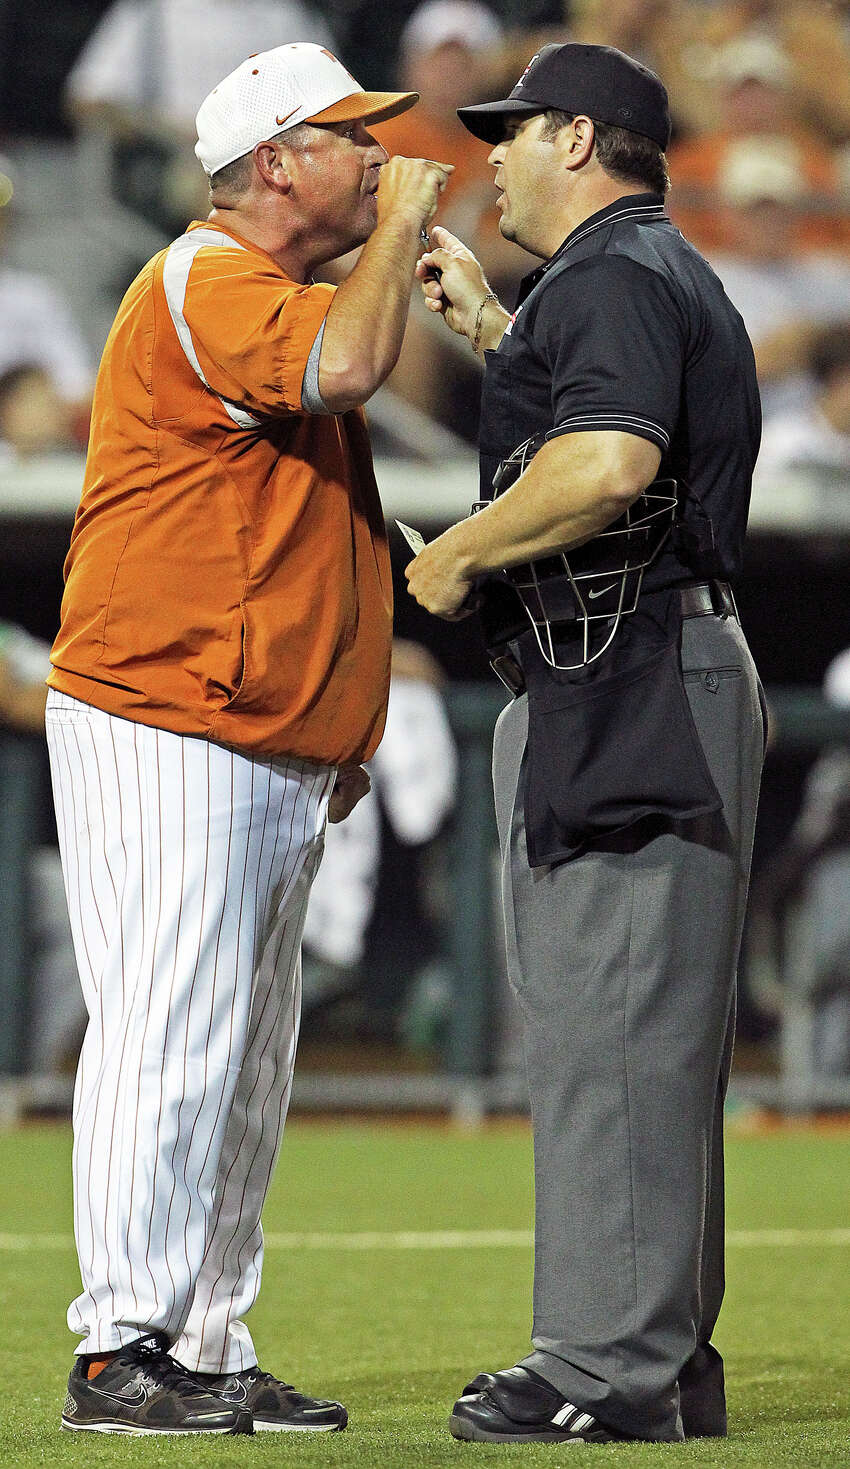 SPORTS UT pitching coach Skip Johnson continues to argue with the home plate umpire after he was tossed out of the game as Texas plays Baylor at Disch-Falk Field in Austin on May 18, 2012. Tom Reel/ San Antonio Express-News